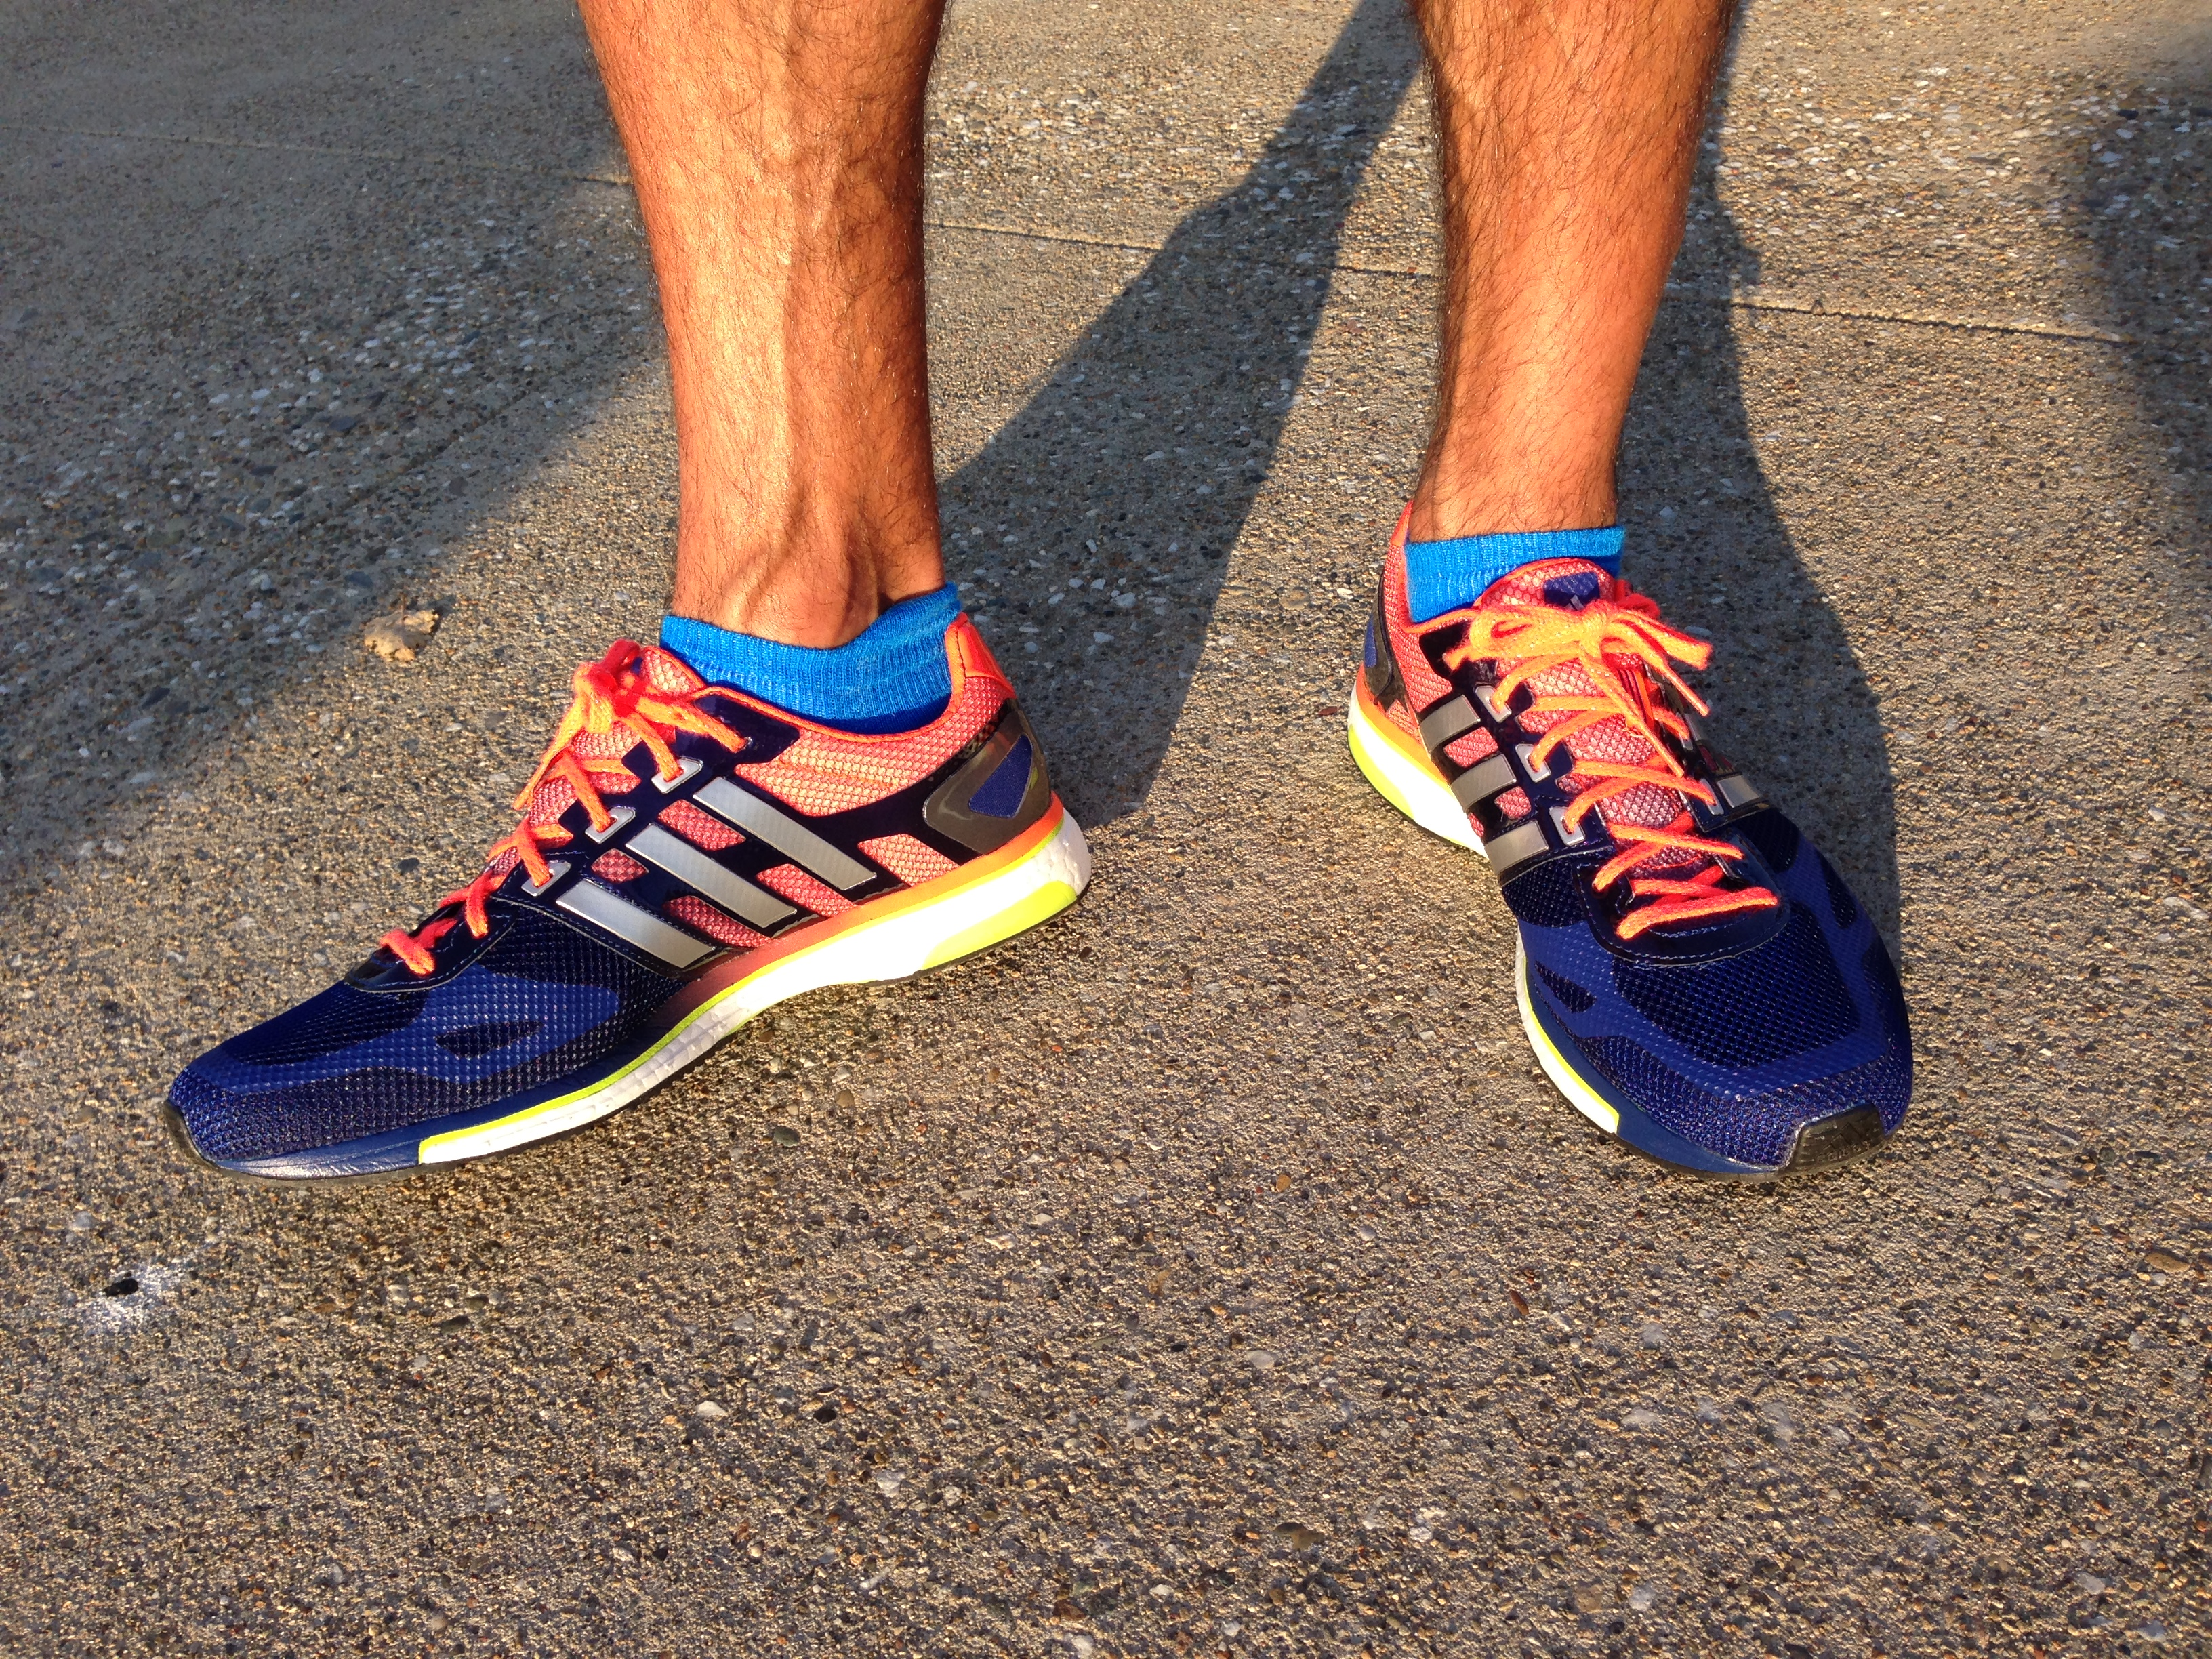 énorme réduction 9dee9 ffecf Adidas Adios Boost | Ultrarunnerpodcast.com